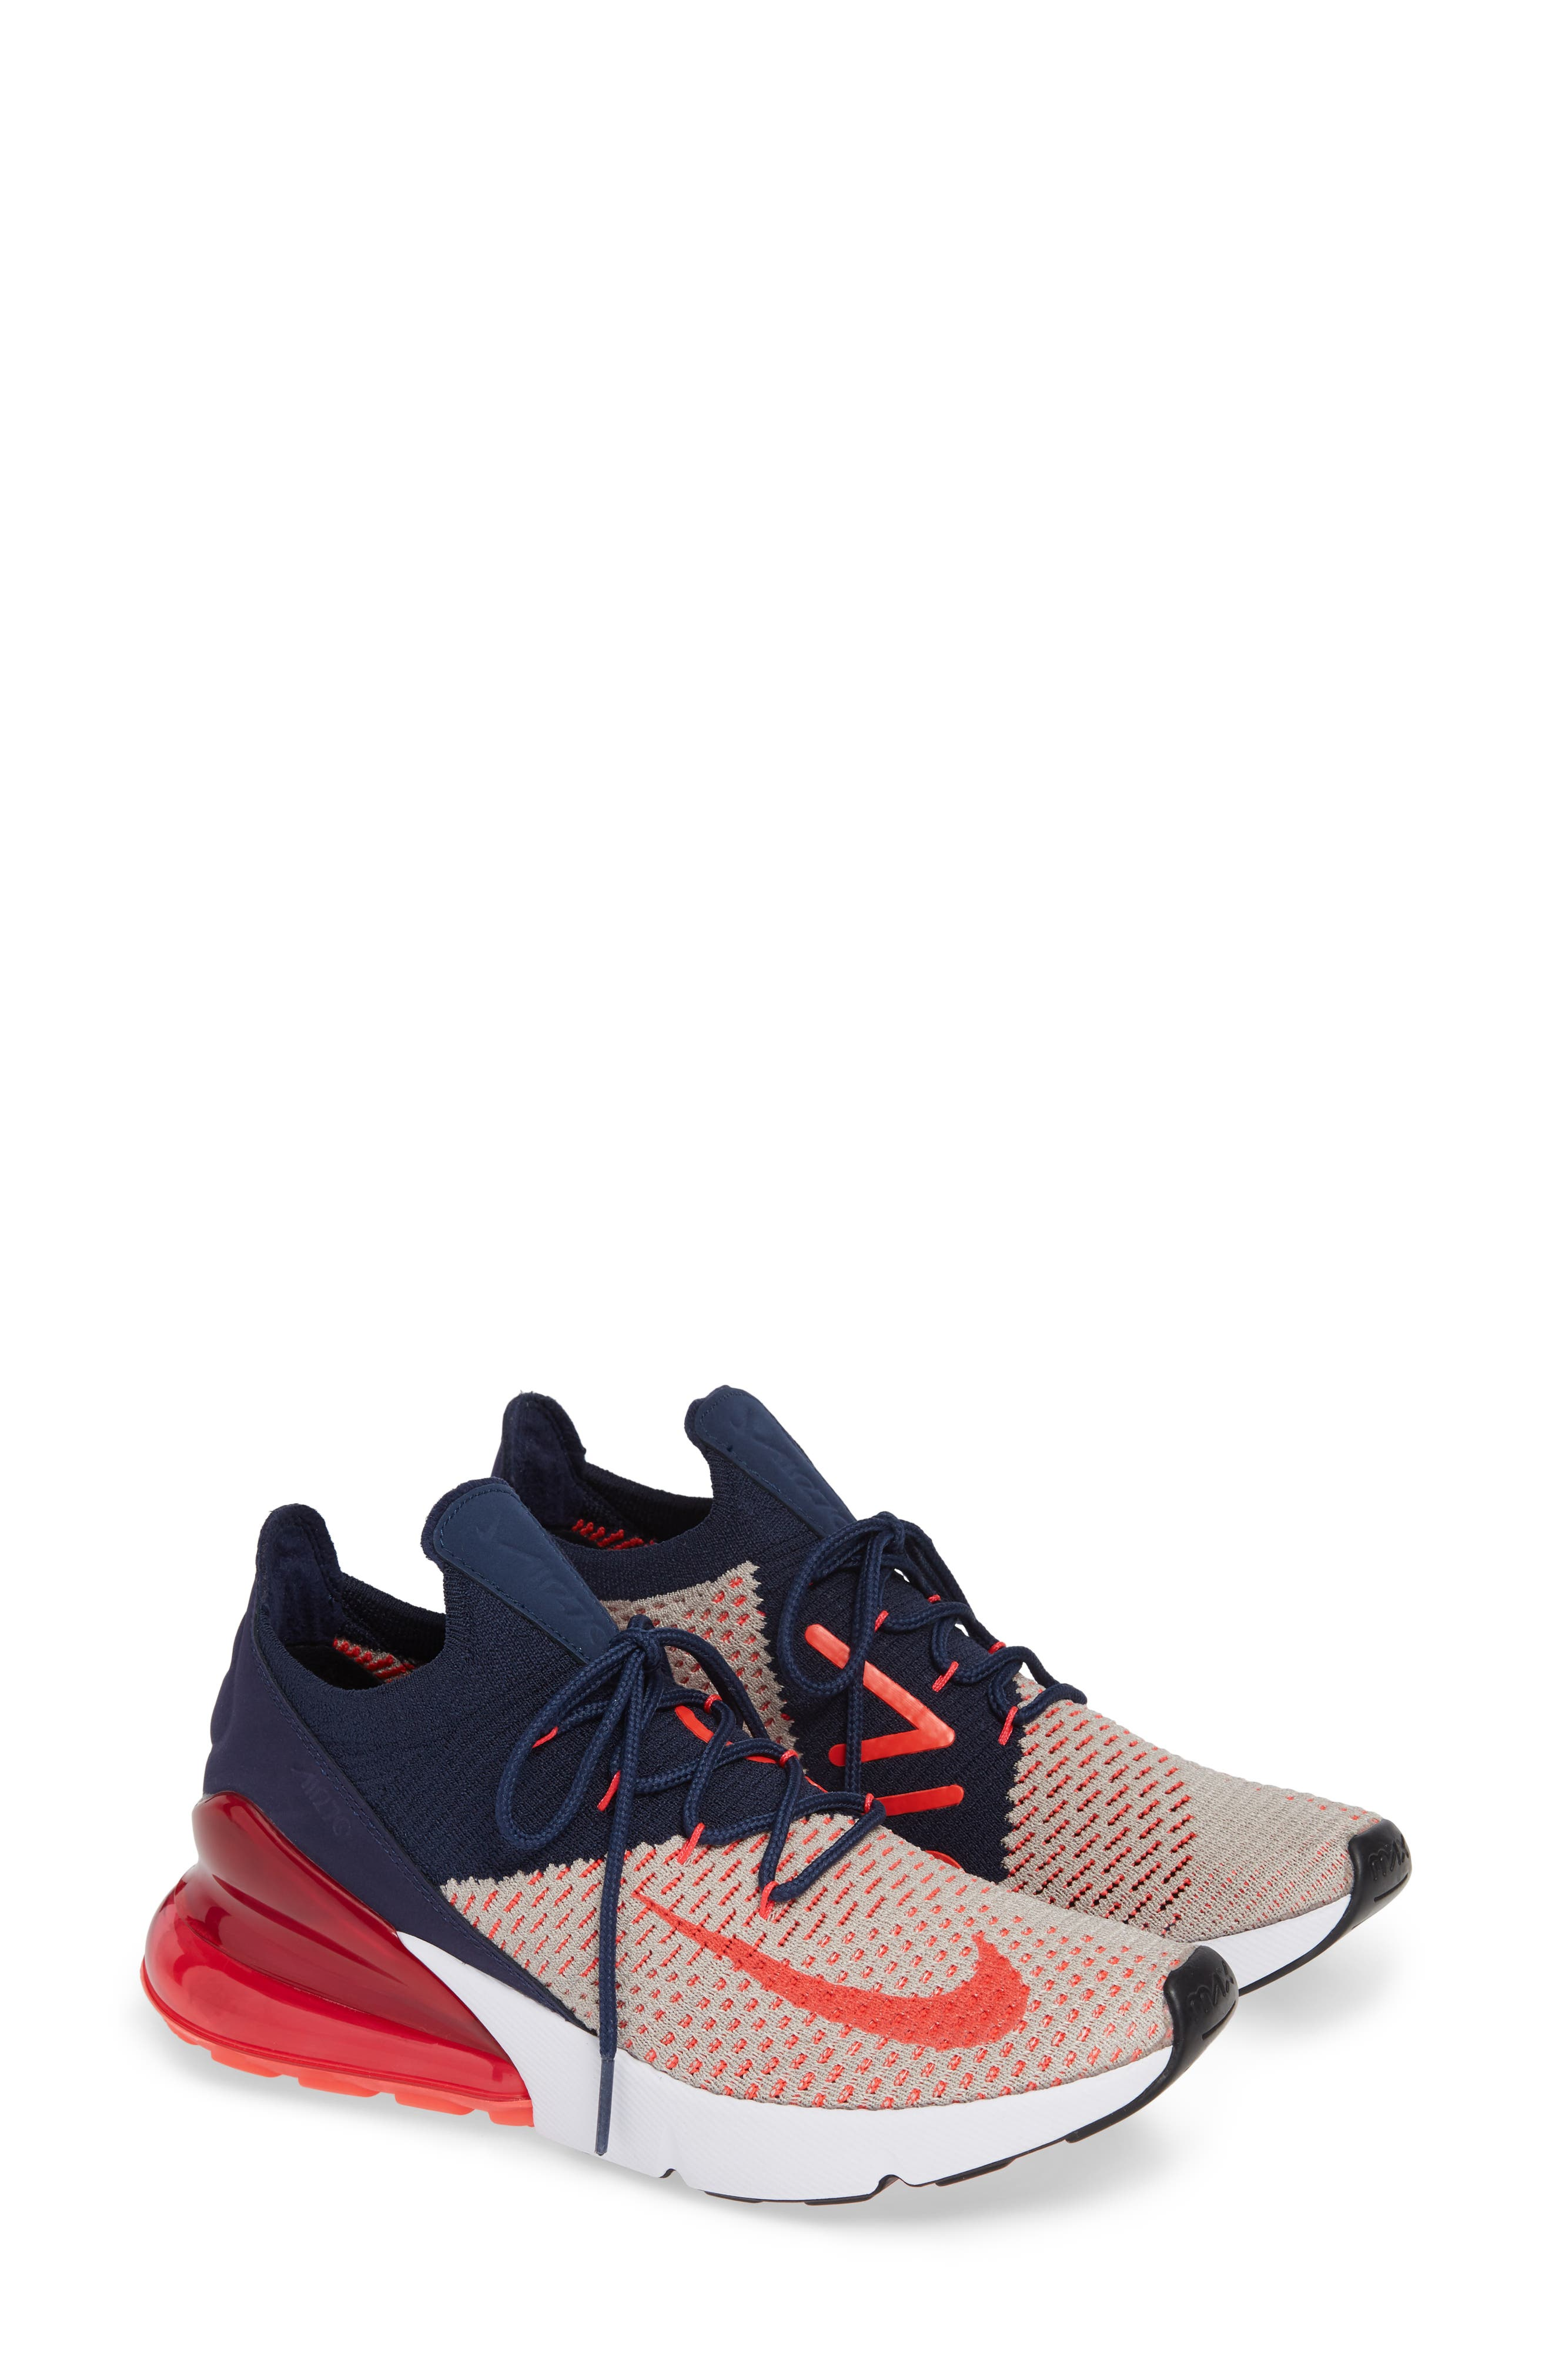 Air Max 270 Flyknit Sneaker,                             Main thumbnail 1, color,                             Moon Particle/ Red Orbit/ Navy